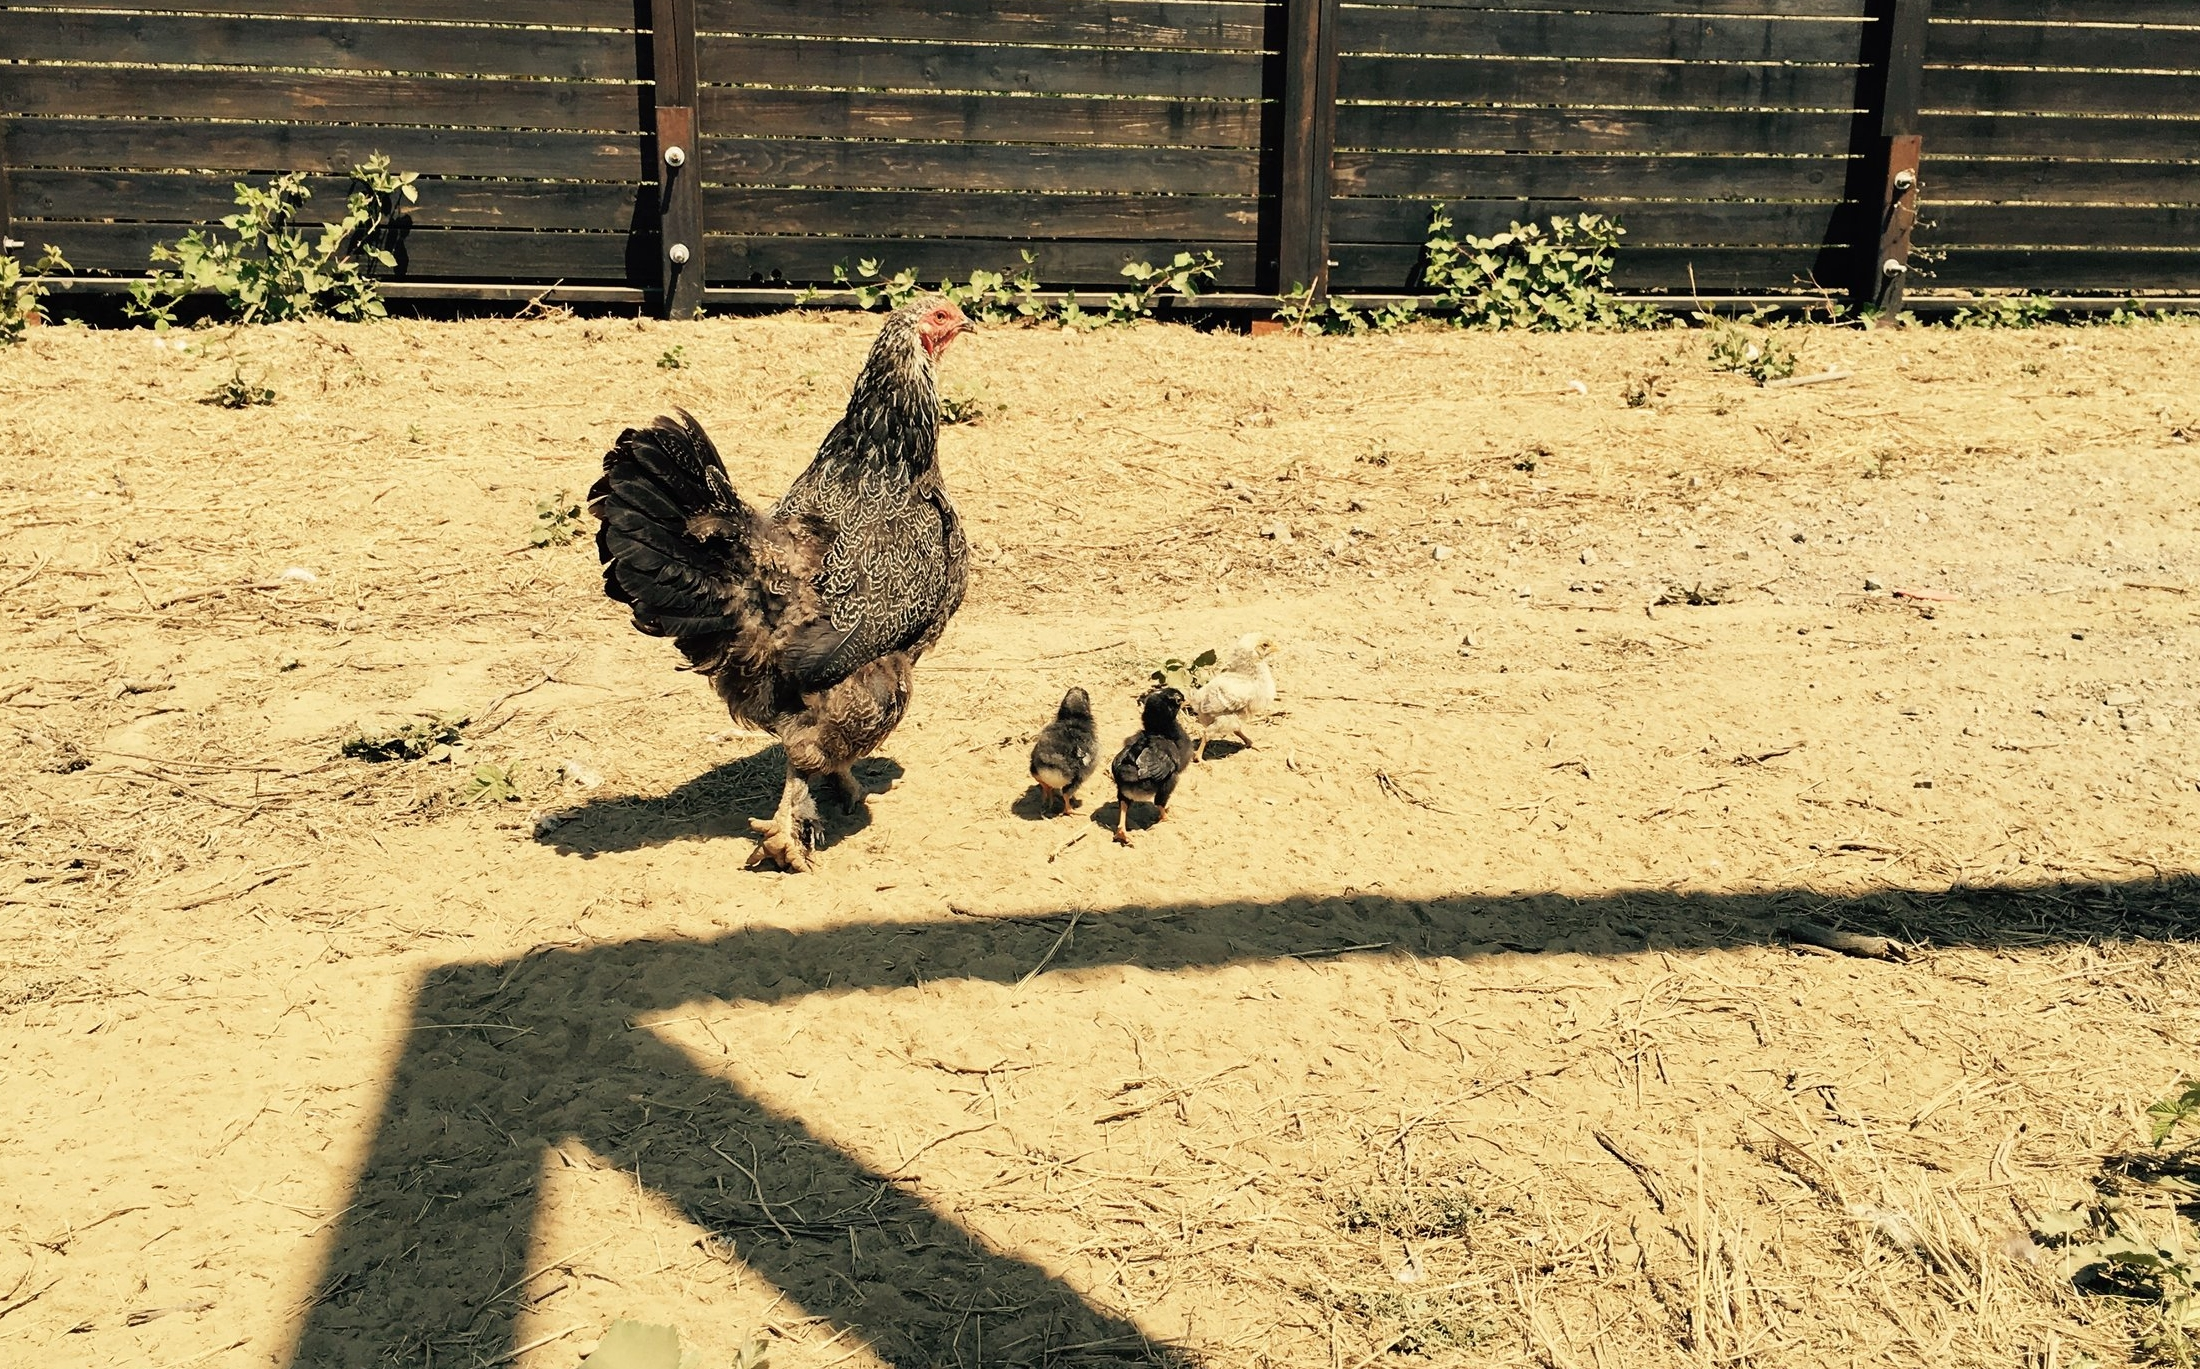 A mother and her babies. Our chickens live a natural life. They even raise their own families.